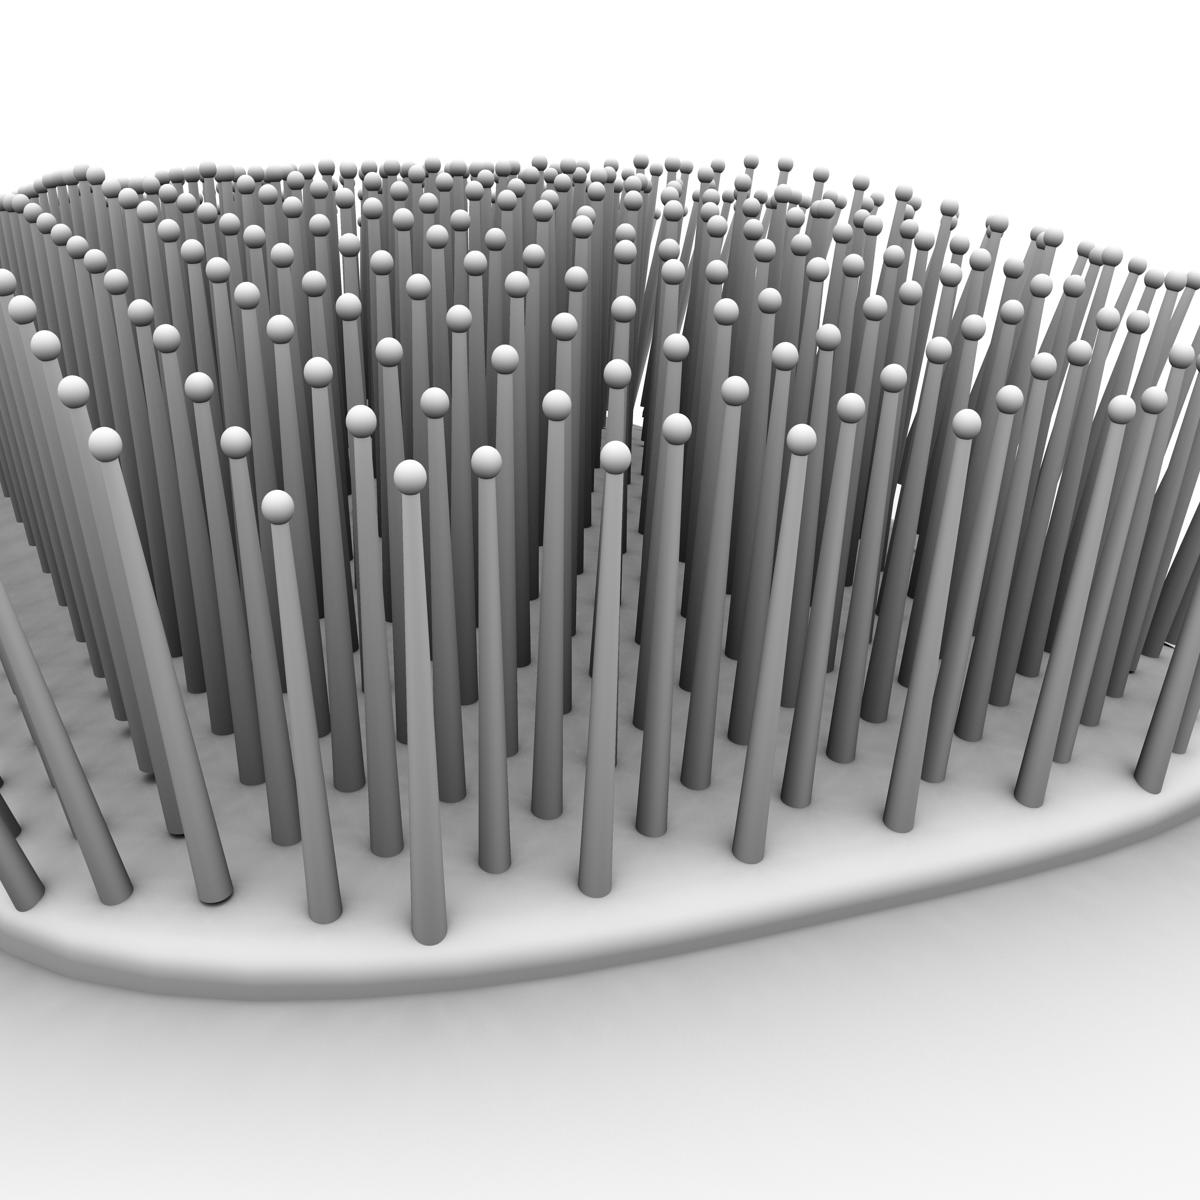 comb 3d model 3ds max fbx ma mb obj 158296